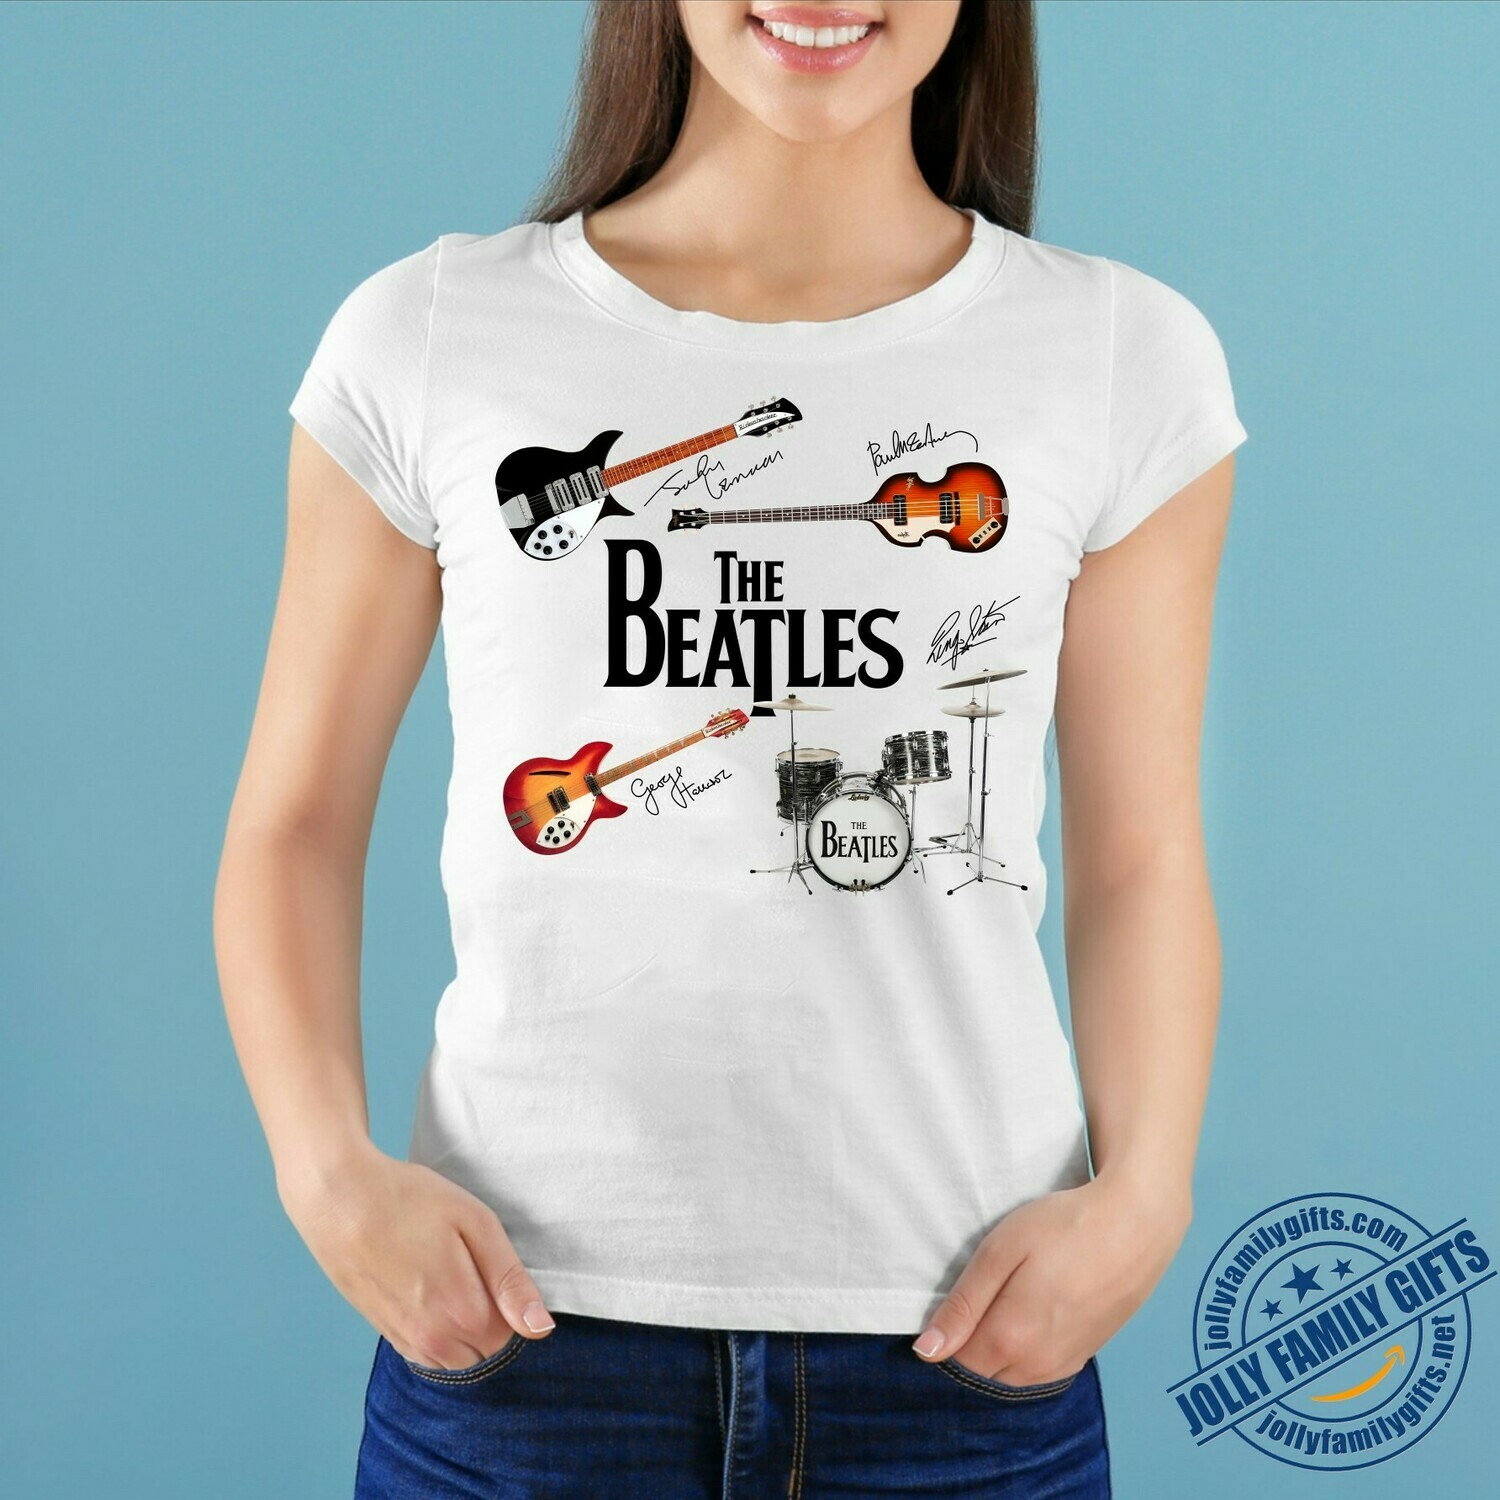 The beatles 60th anniversary 1960 - 2020 thank you for the memories signal  Unisex T-Shirt Hoodie Sweatshirt Sweater Plus Size for Ladies Women Men Kids Youth Gifts Tee Jolly Family Gifts